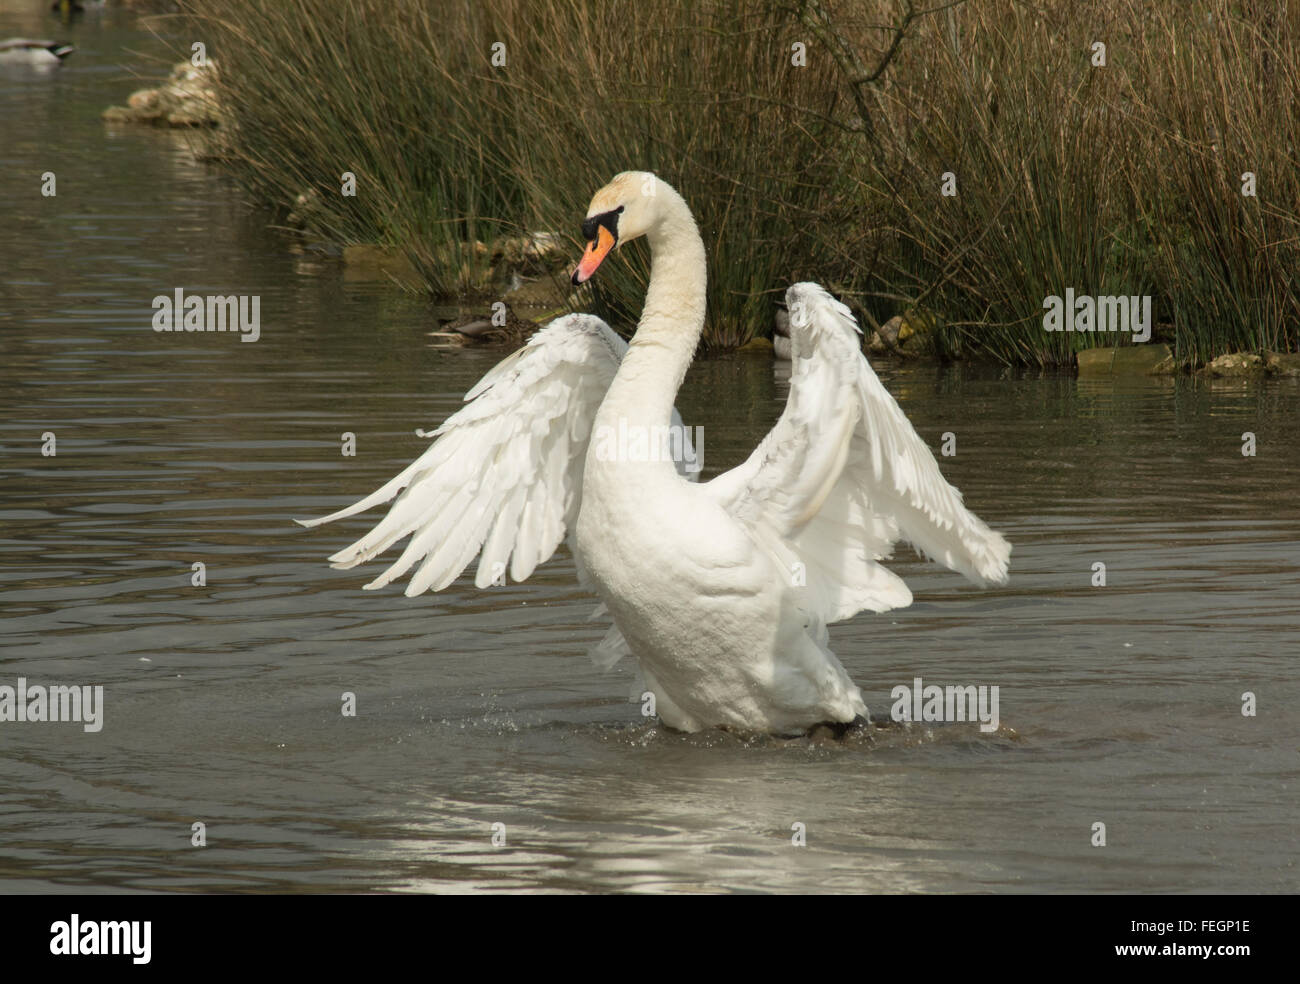 Mute swan with outstretched wings (Cygnus olor) Stock Photo